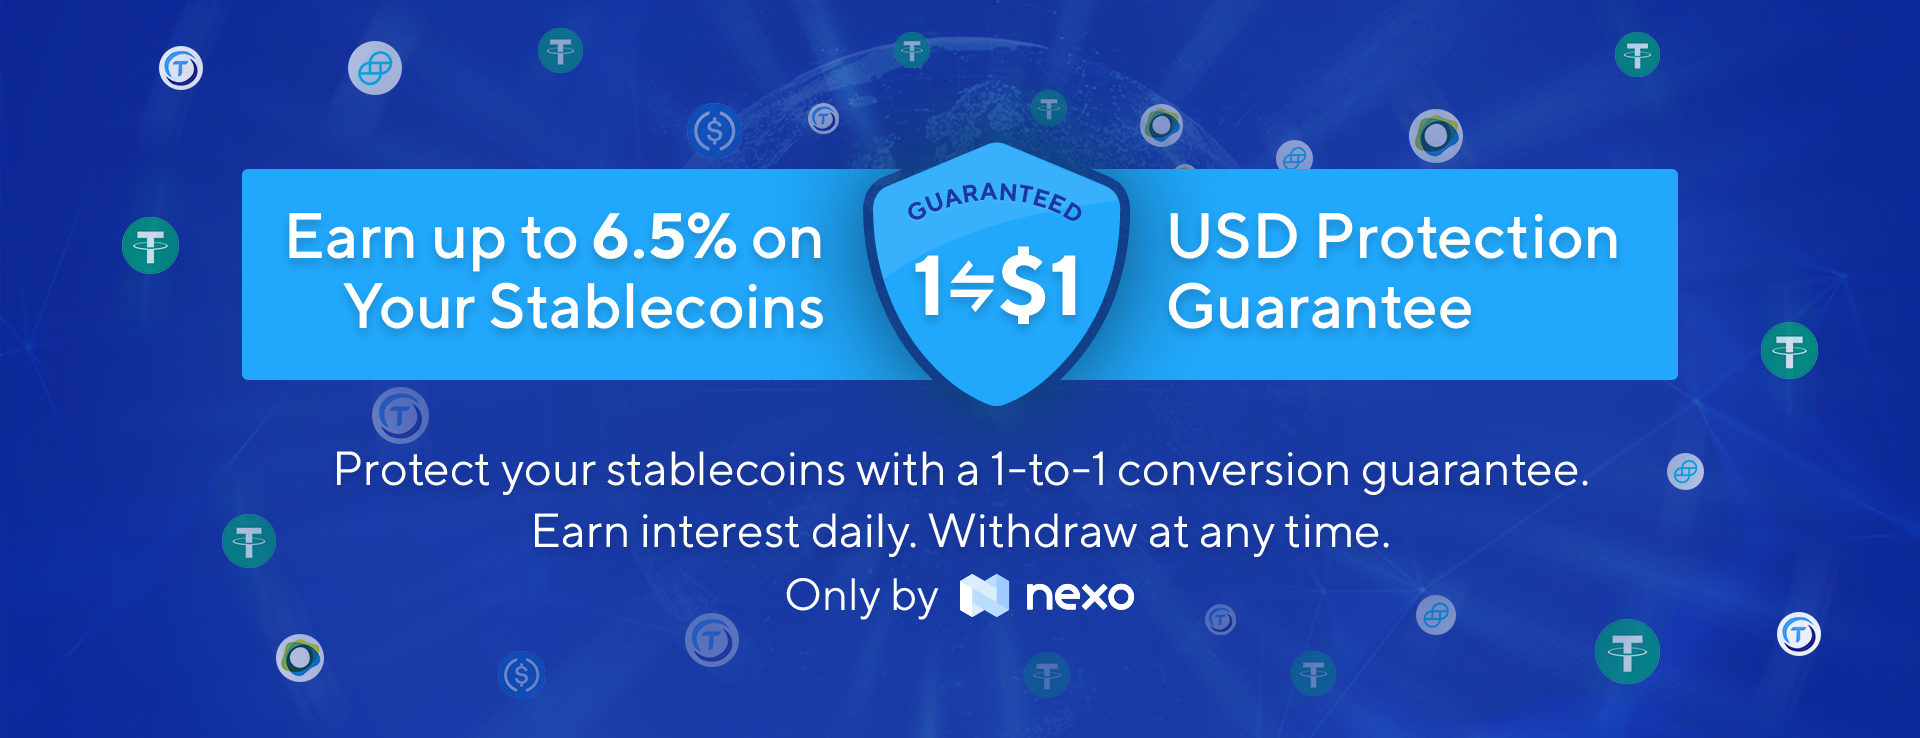 NEXO - Earn Interest and Protect Your Stablecoins with Nexo's 1-to-1